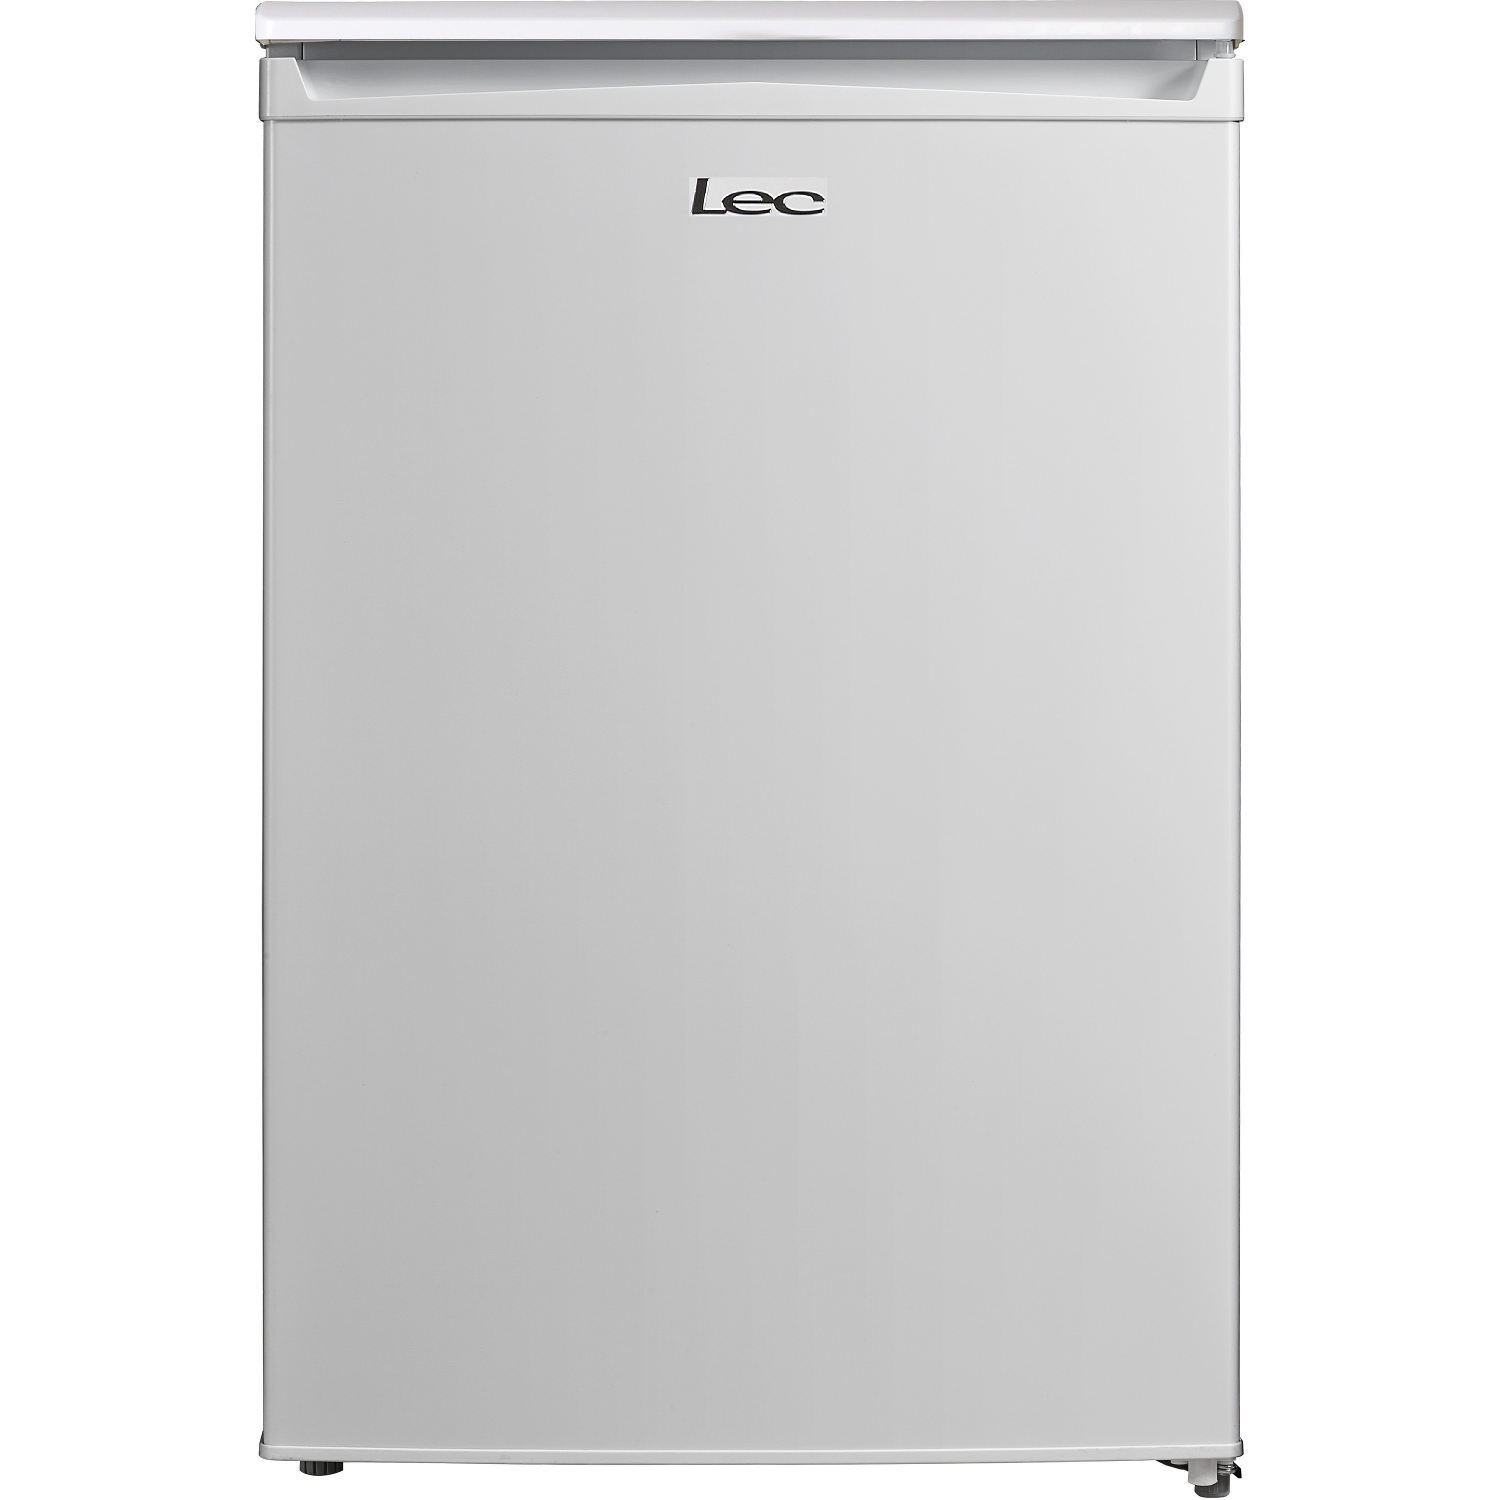 Lec 55cm Undercounter Larder Fridge - White - A+ Rated - 0